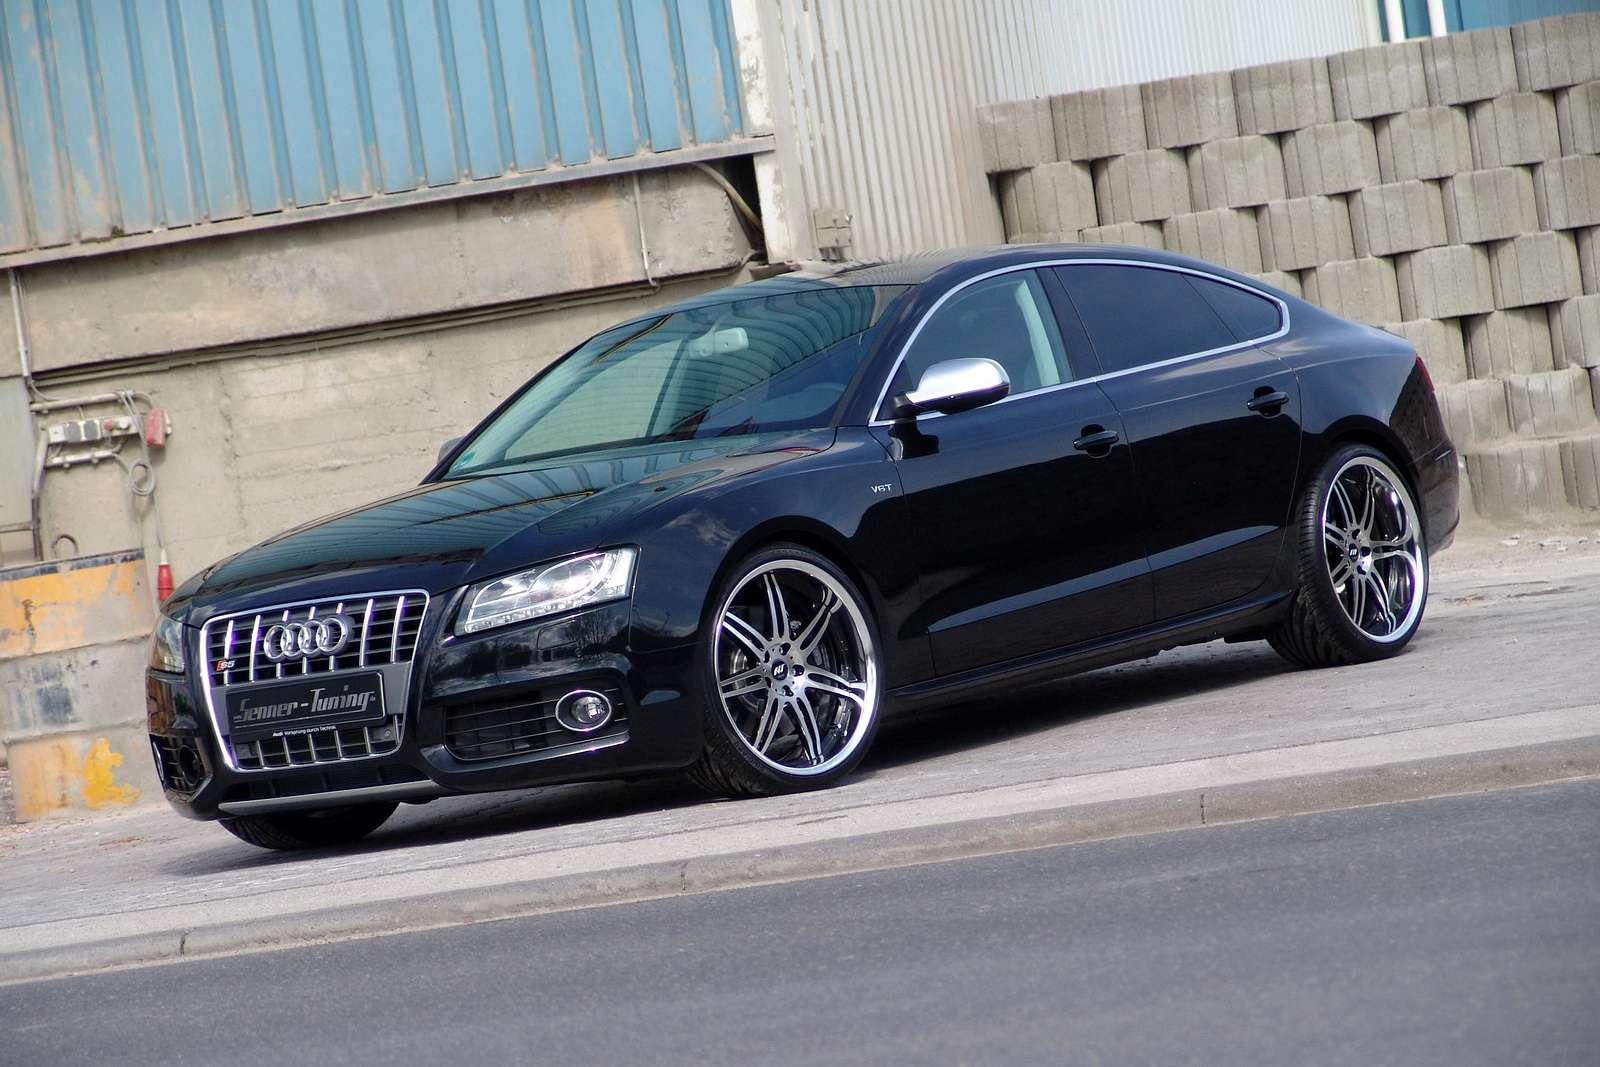 dyskretny senner tuning audi s5 sportback motofilm. Black Bedroom Furniture Sets. Home Design Ideas